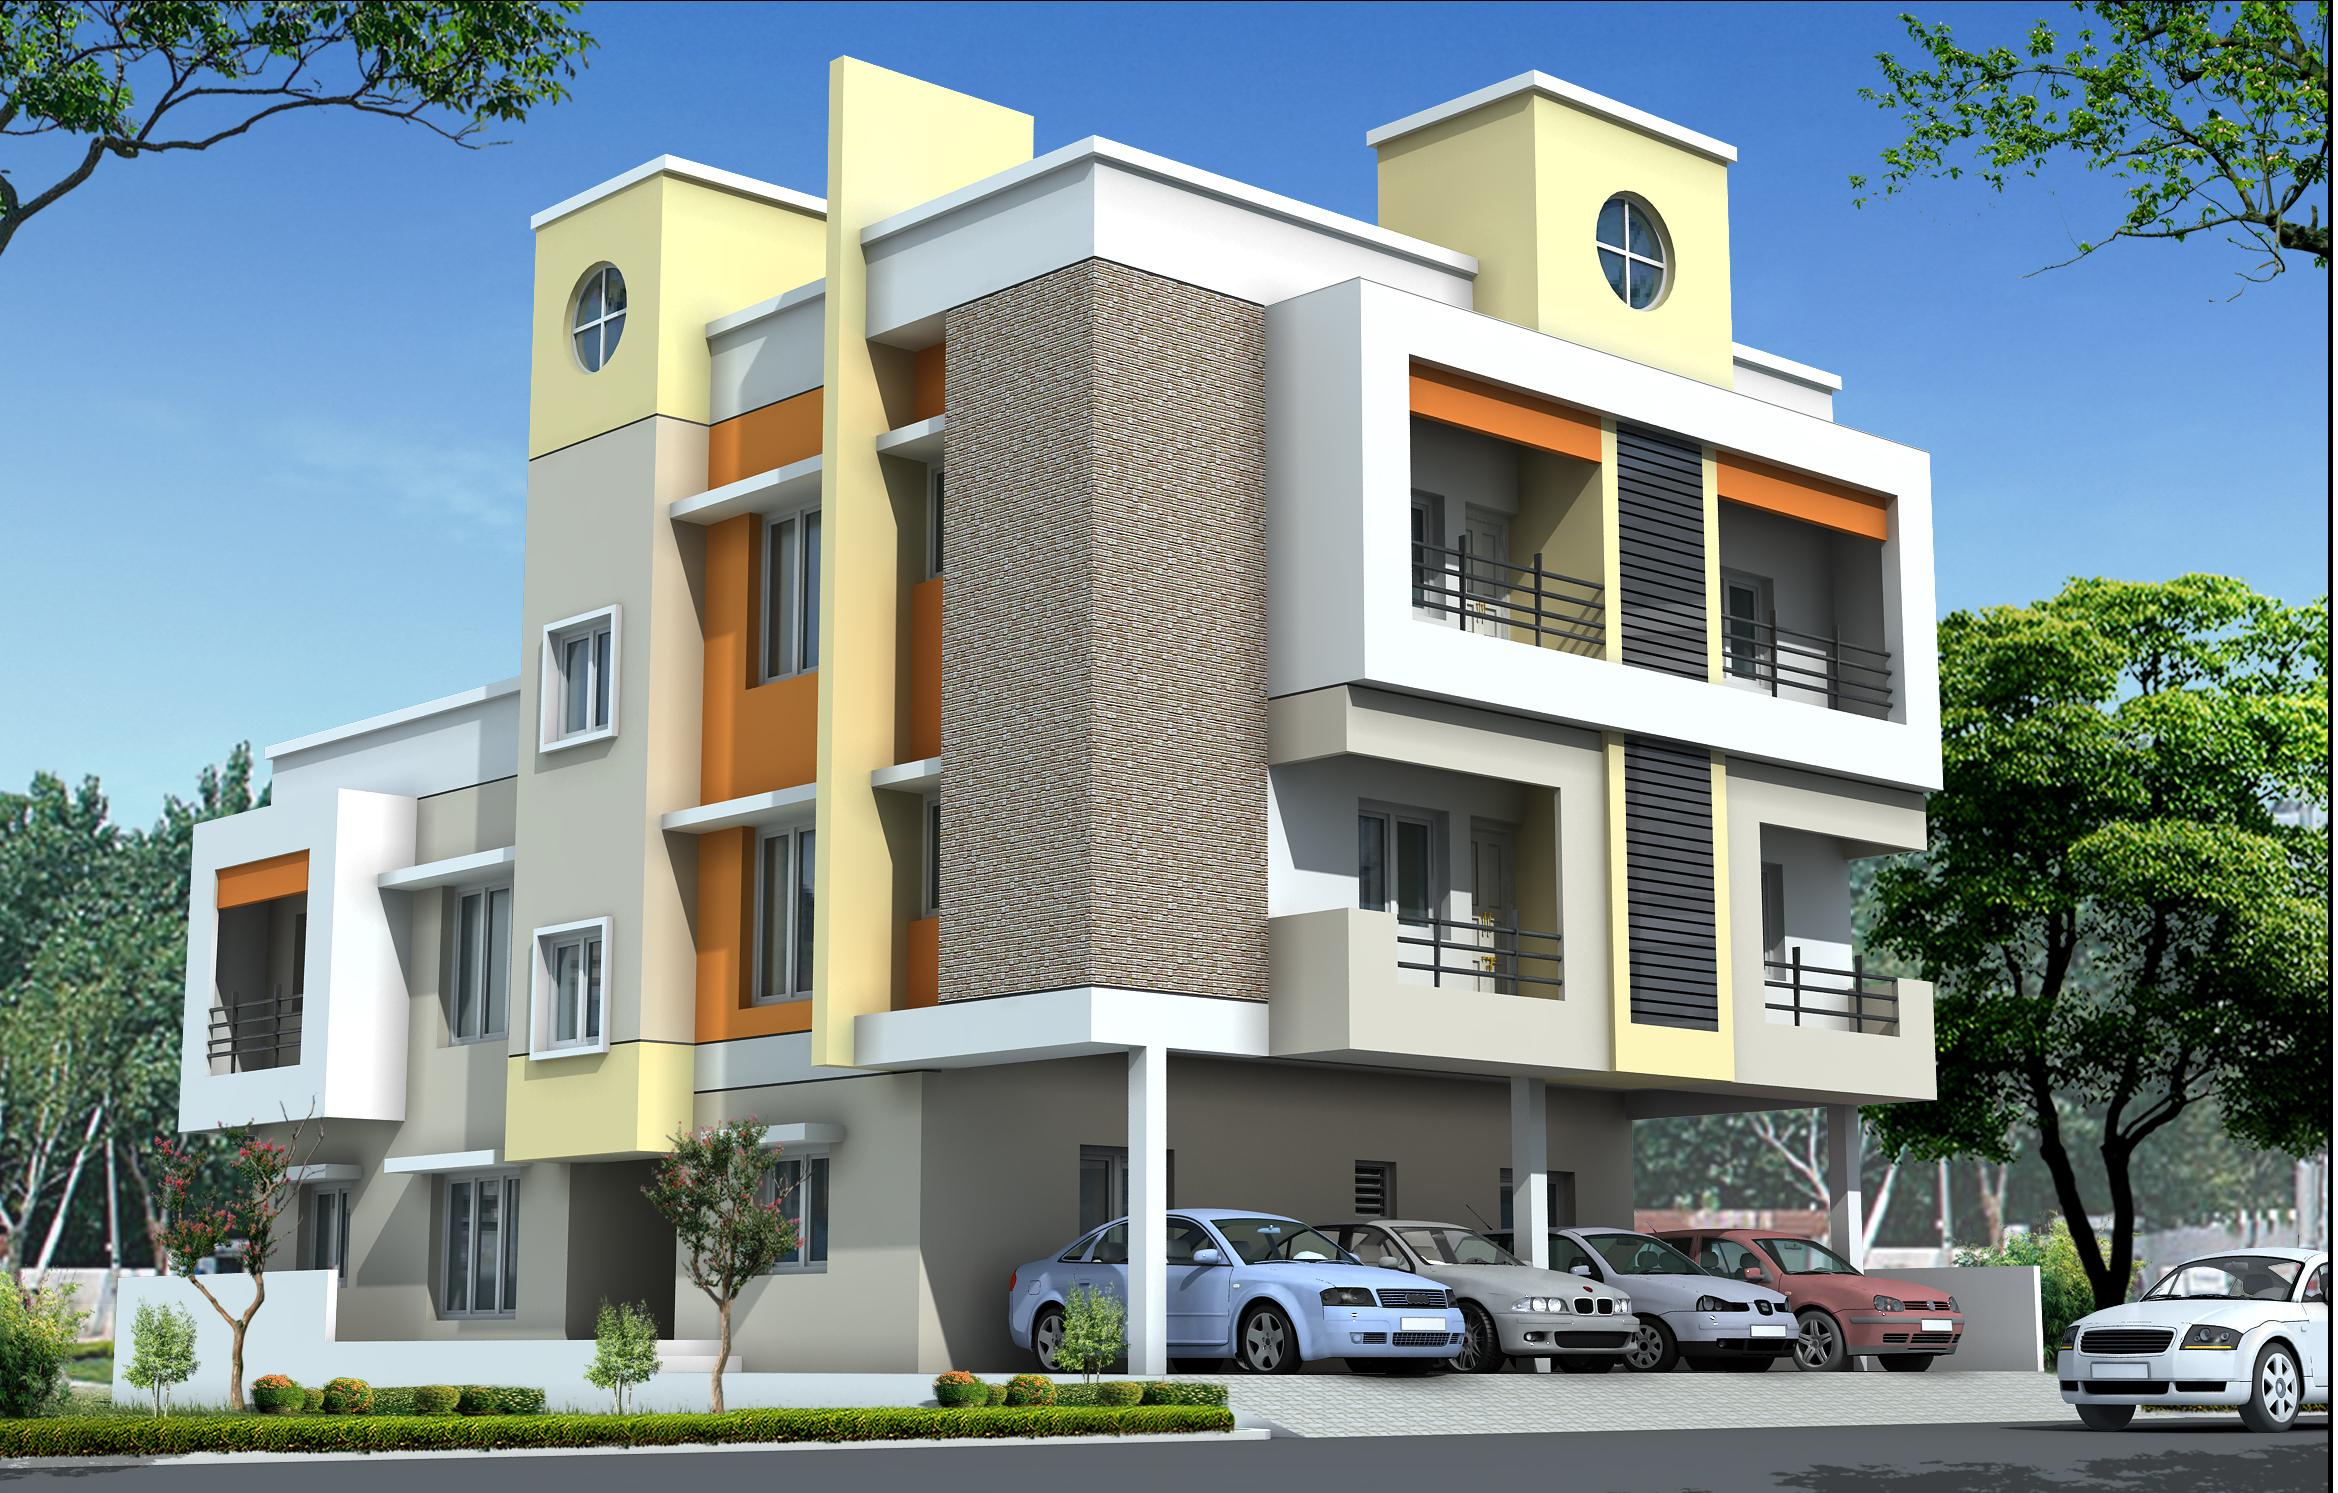 Front Elevation Of Multistoried Building : Residential multi storey building elevation design